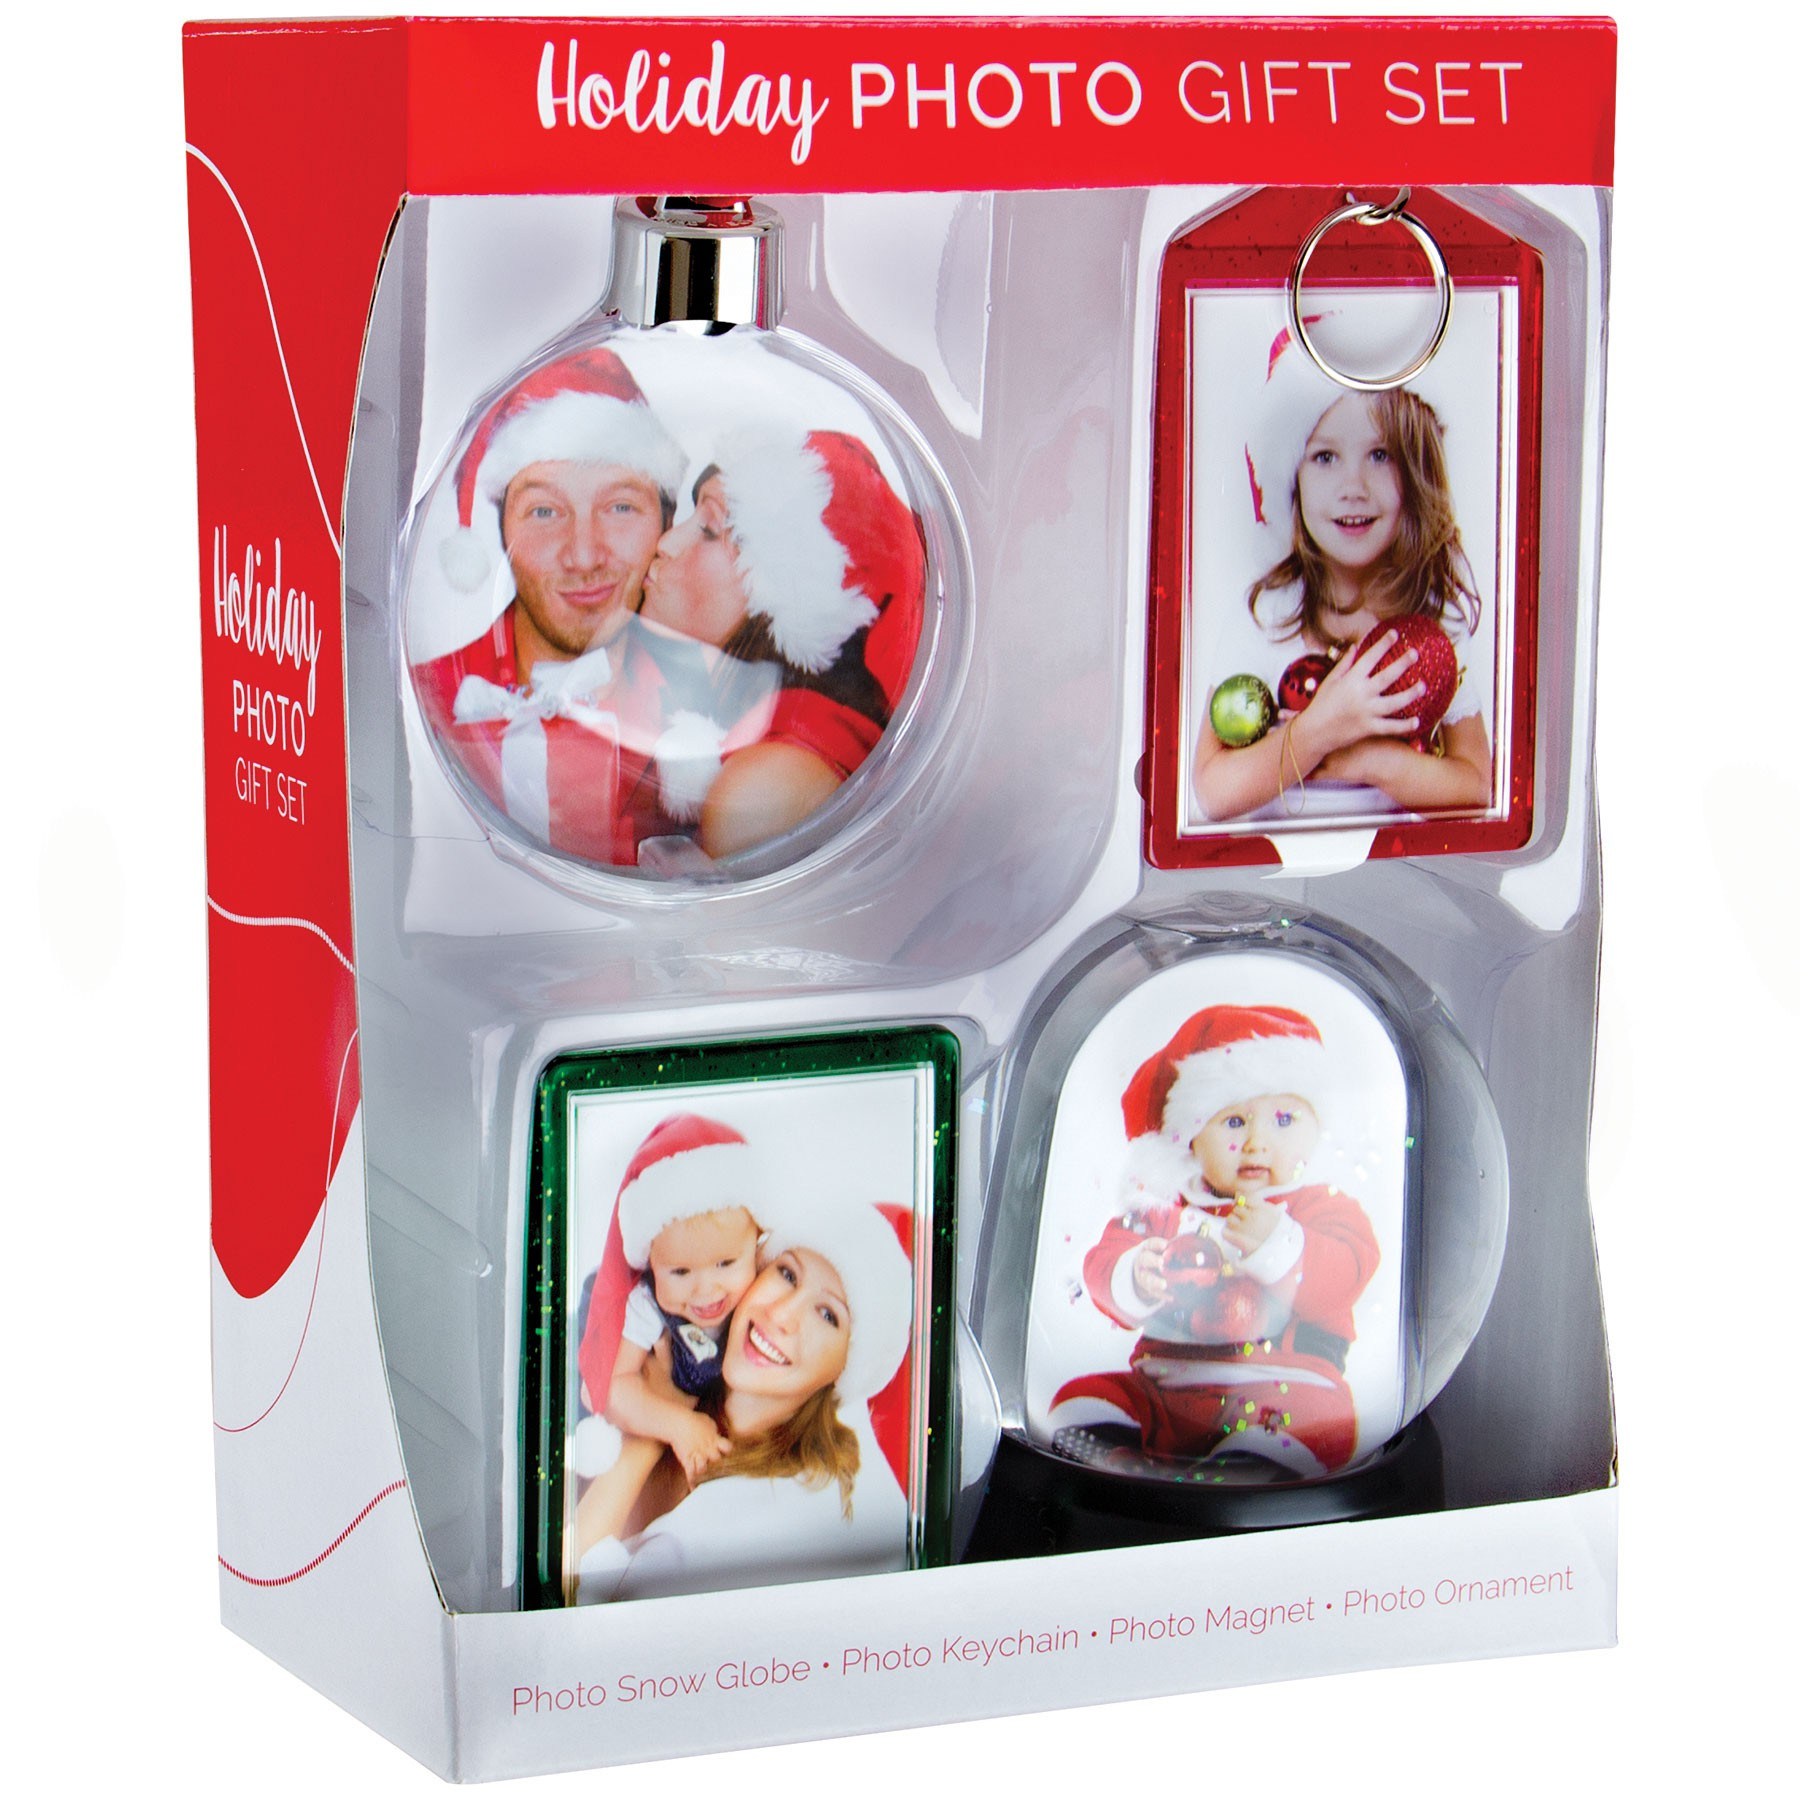 Wholesale Christmas Holiday Photo Gift Set for professional photographers